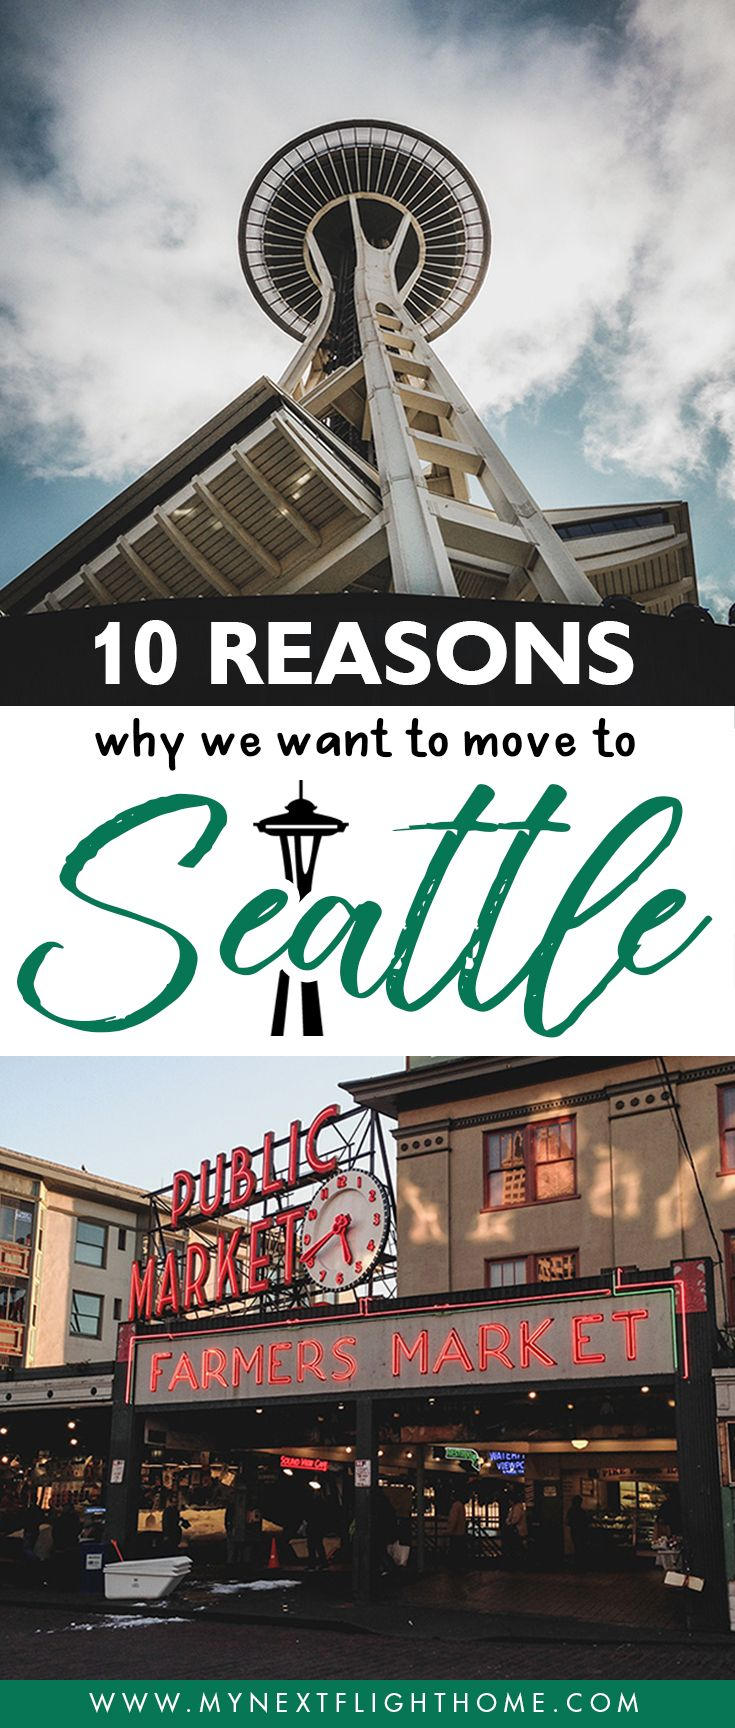 10 Reasons Why We Want to Move To Seattle When the kids are all grown up, I see myself living here and basking in the gloomy, rainy weather of this city. For now, I can only share with you some reasons why Seattle has become our favorite. Seattle | Pacific Northwest | PNW | USA | Why Move To Seattle | Space Needle | Washington State | Upper Left USA | Northwest | Living in Seattle | People in Seattle | What's it like in Seattle | Seattle Weather | Pike Place Market